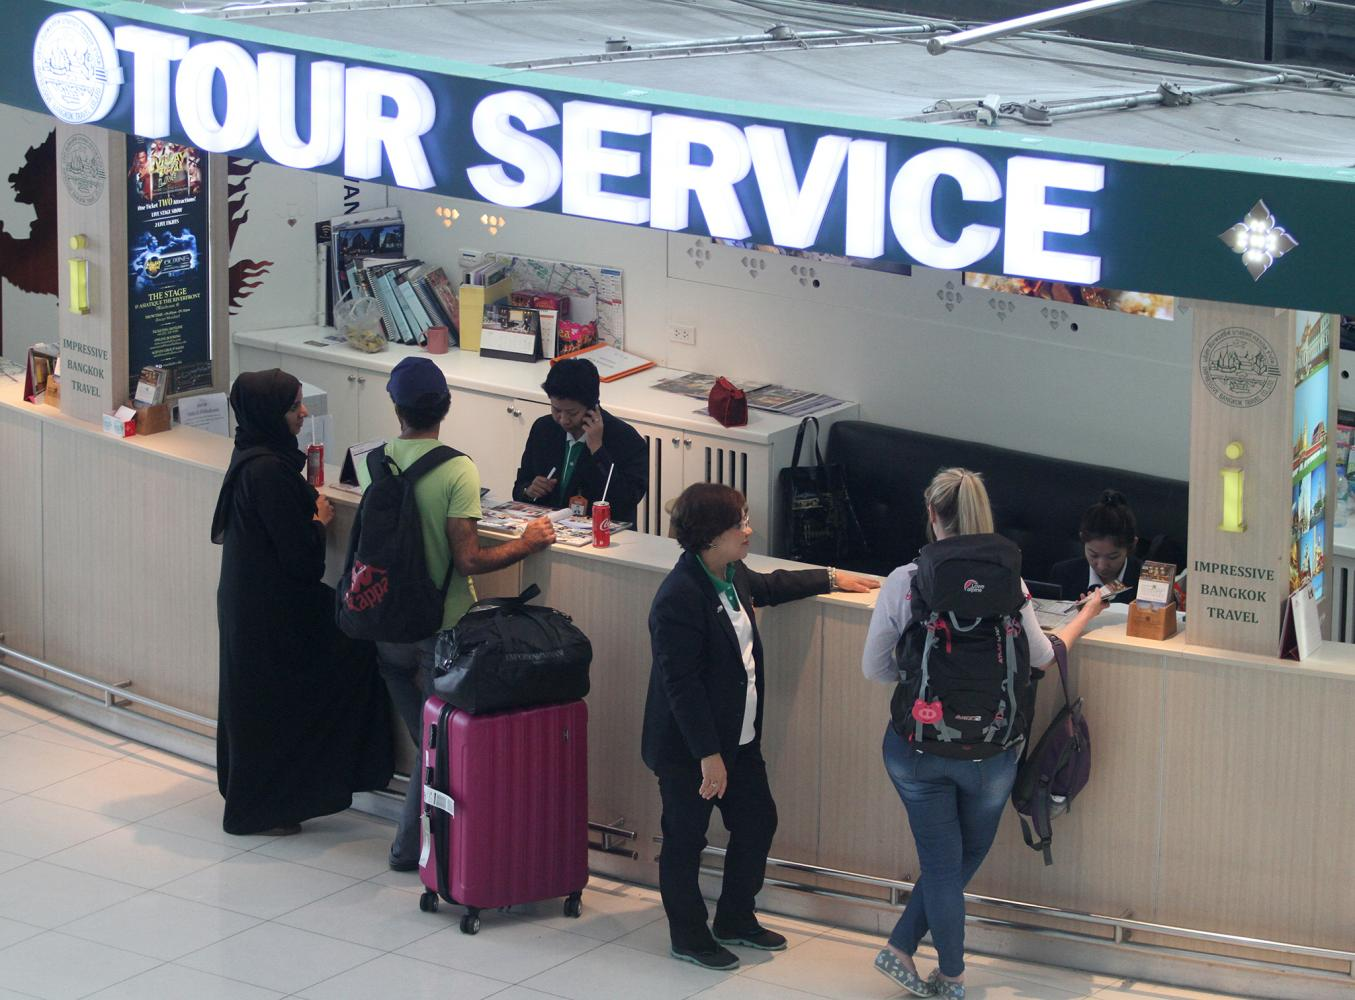 Foreigners check out tour service offerings at a Suvarnabhumi airport counter.  (Photo by Thanarak Khunton)